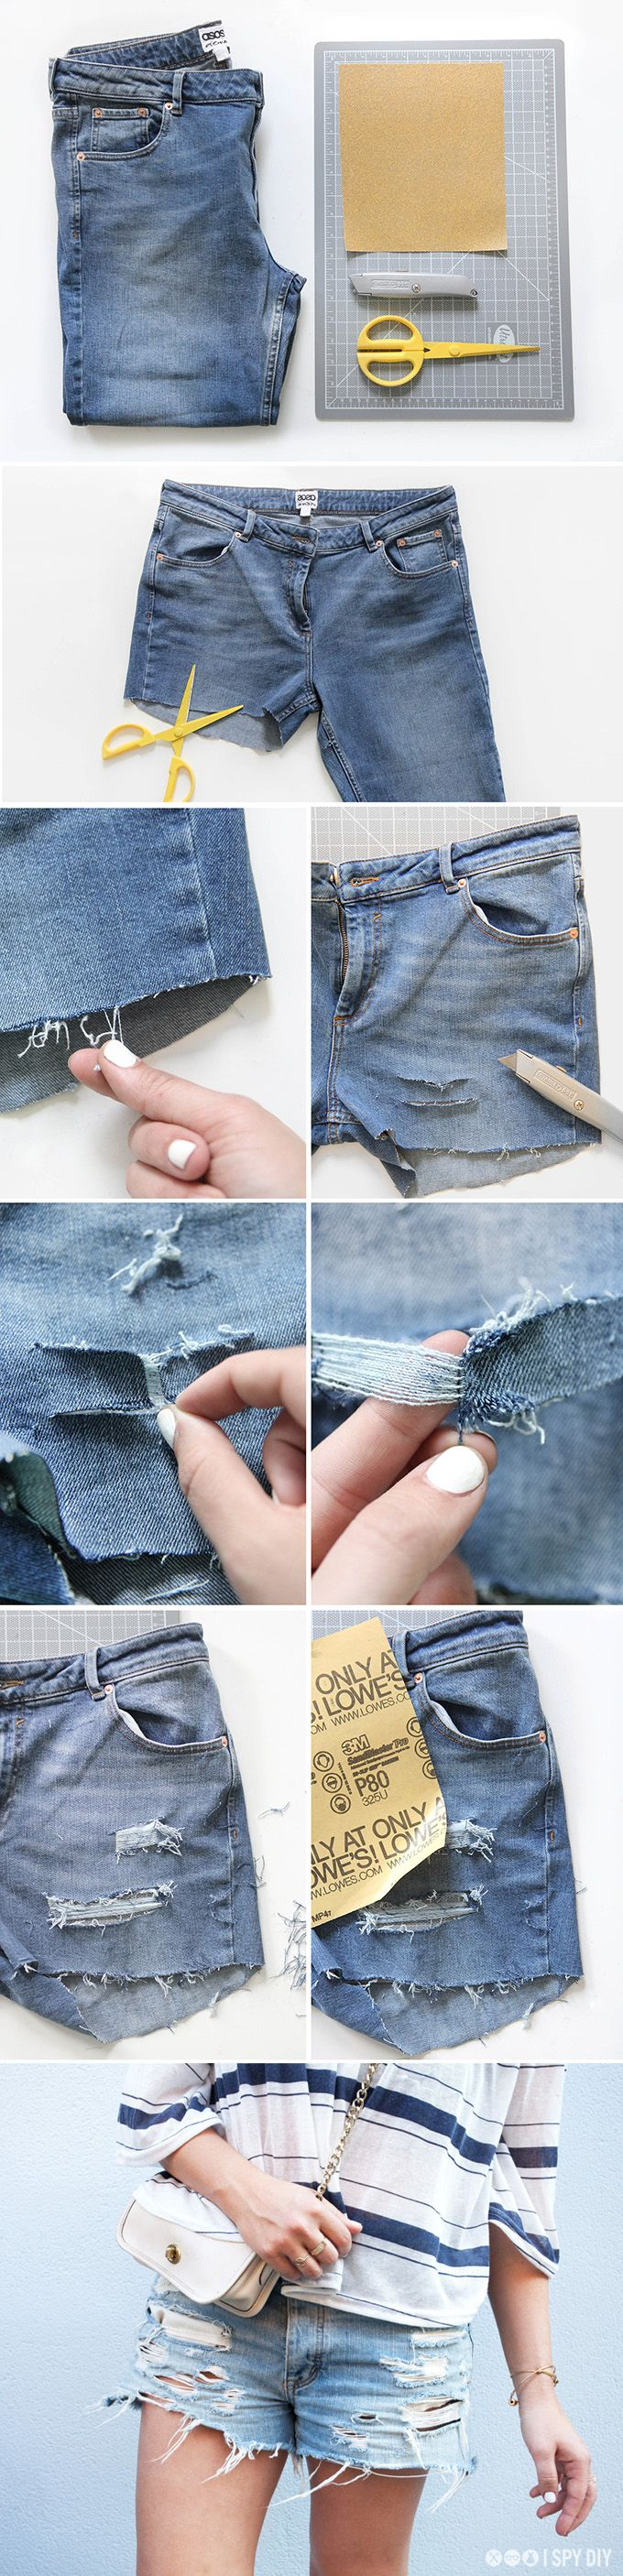 DIY Distressed Denim Shorts Tutorial